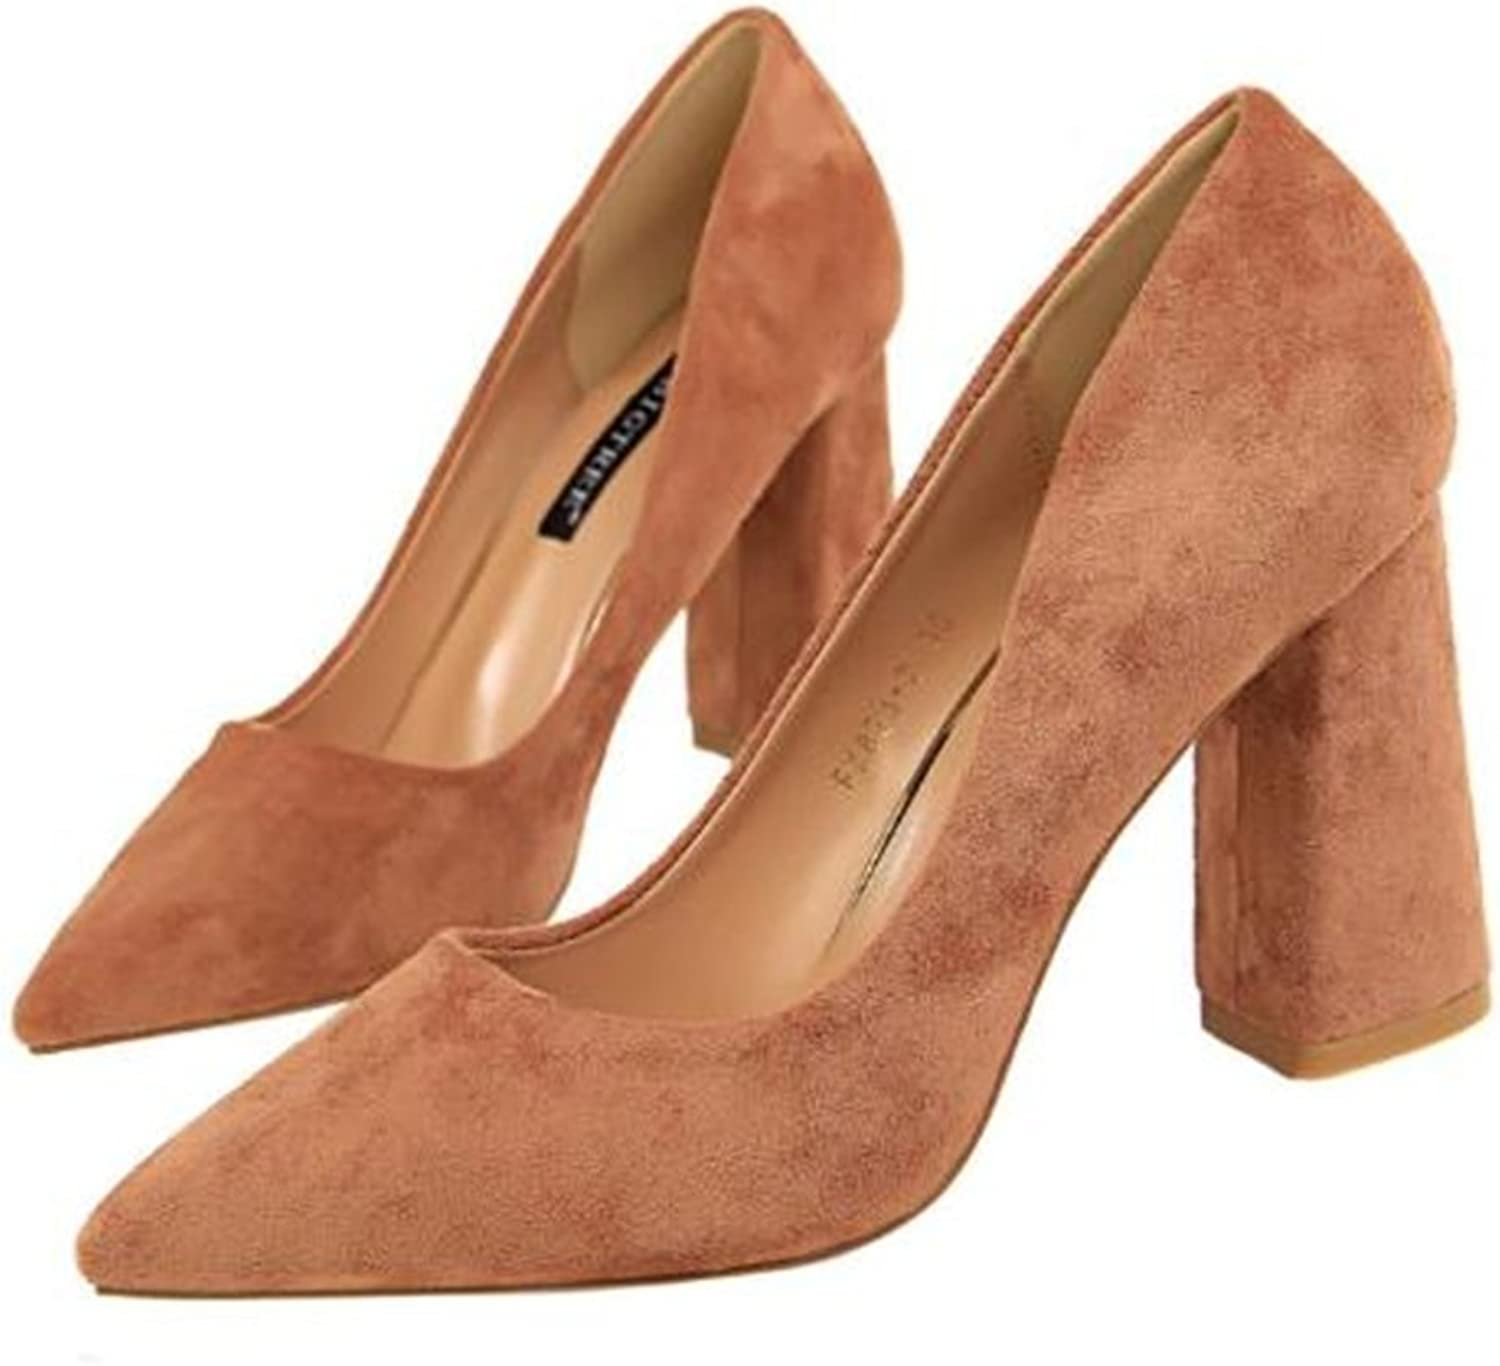 TUYPSHOES Women Suede High Heel Pumps Classic Pointy Toe Slip On Formal Block shoes Work Pumps shoes